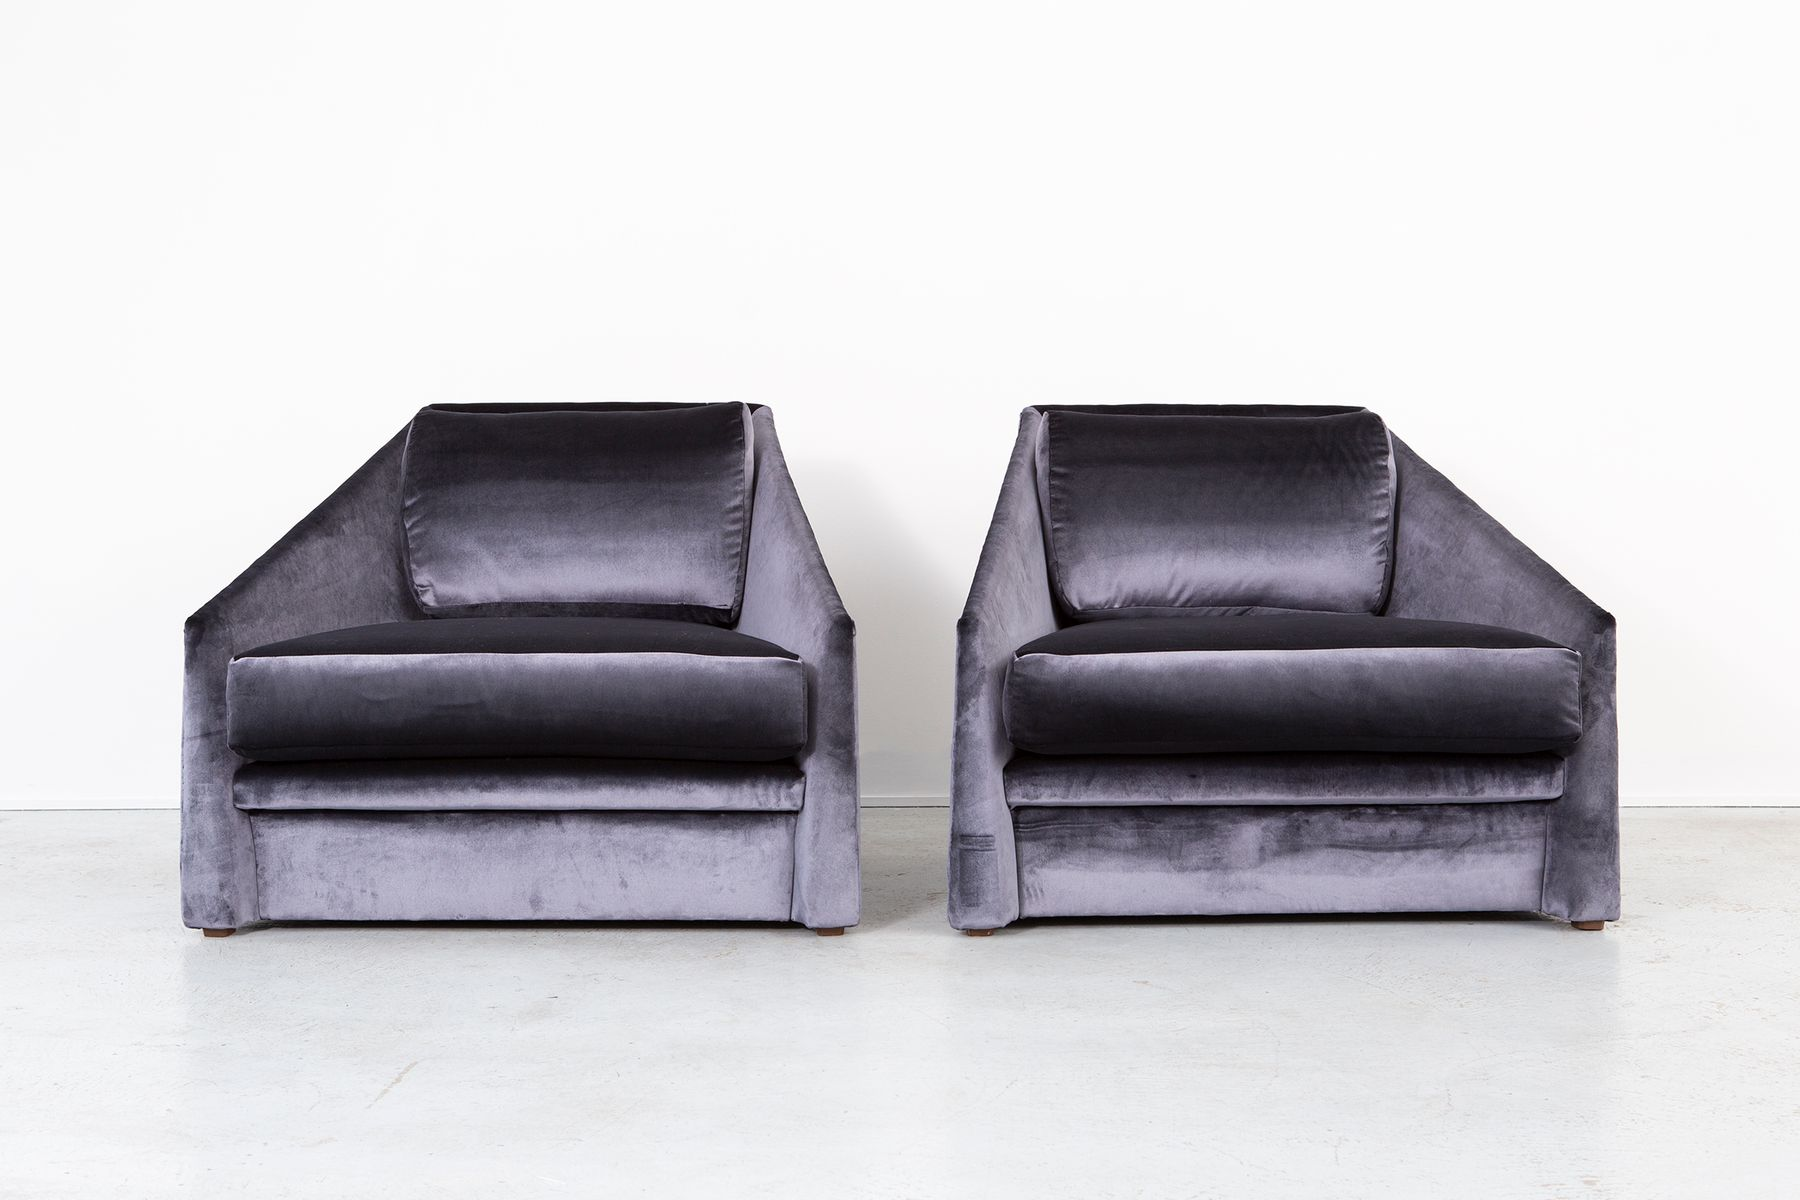 Attractive Velvet Lounge Chairs By Adrian Pearsall For Comfort Designs, 1980s, Set Of  2 For Sale At Pamono